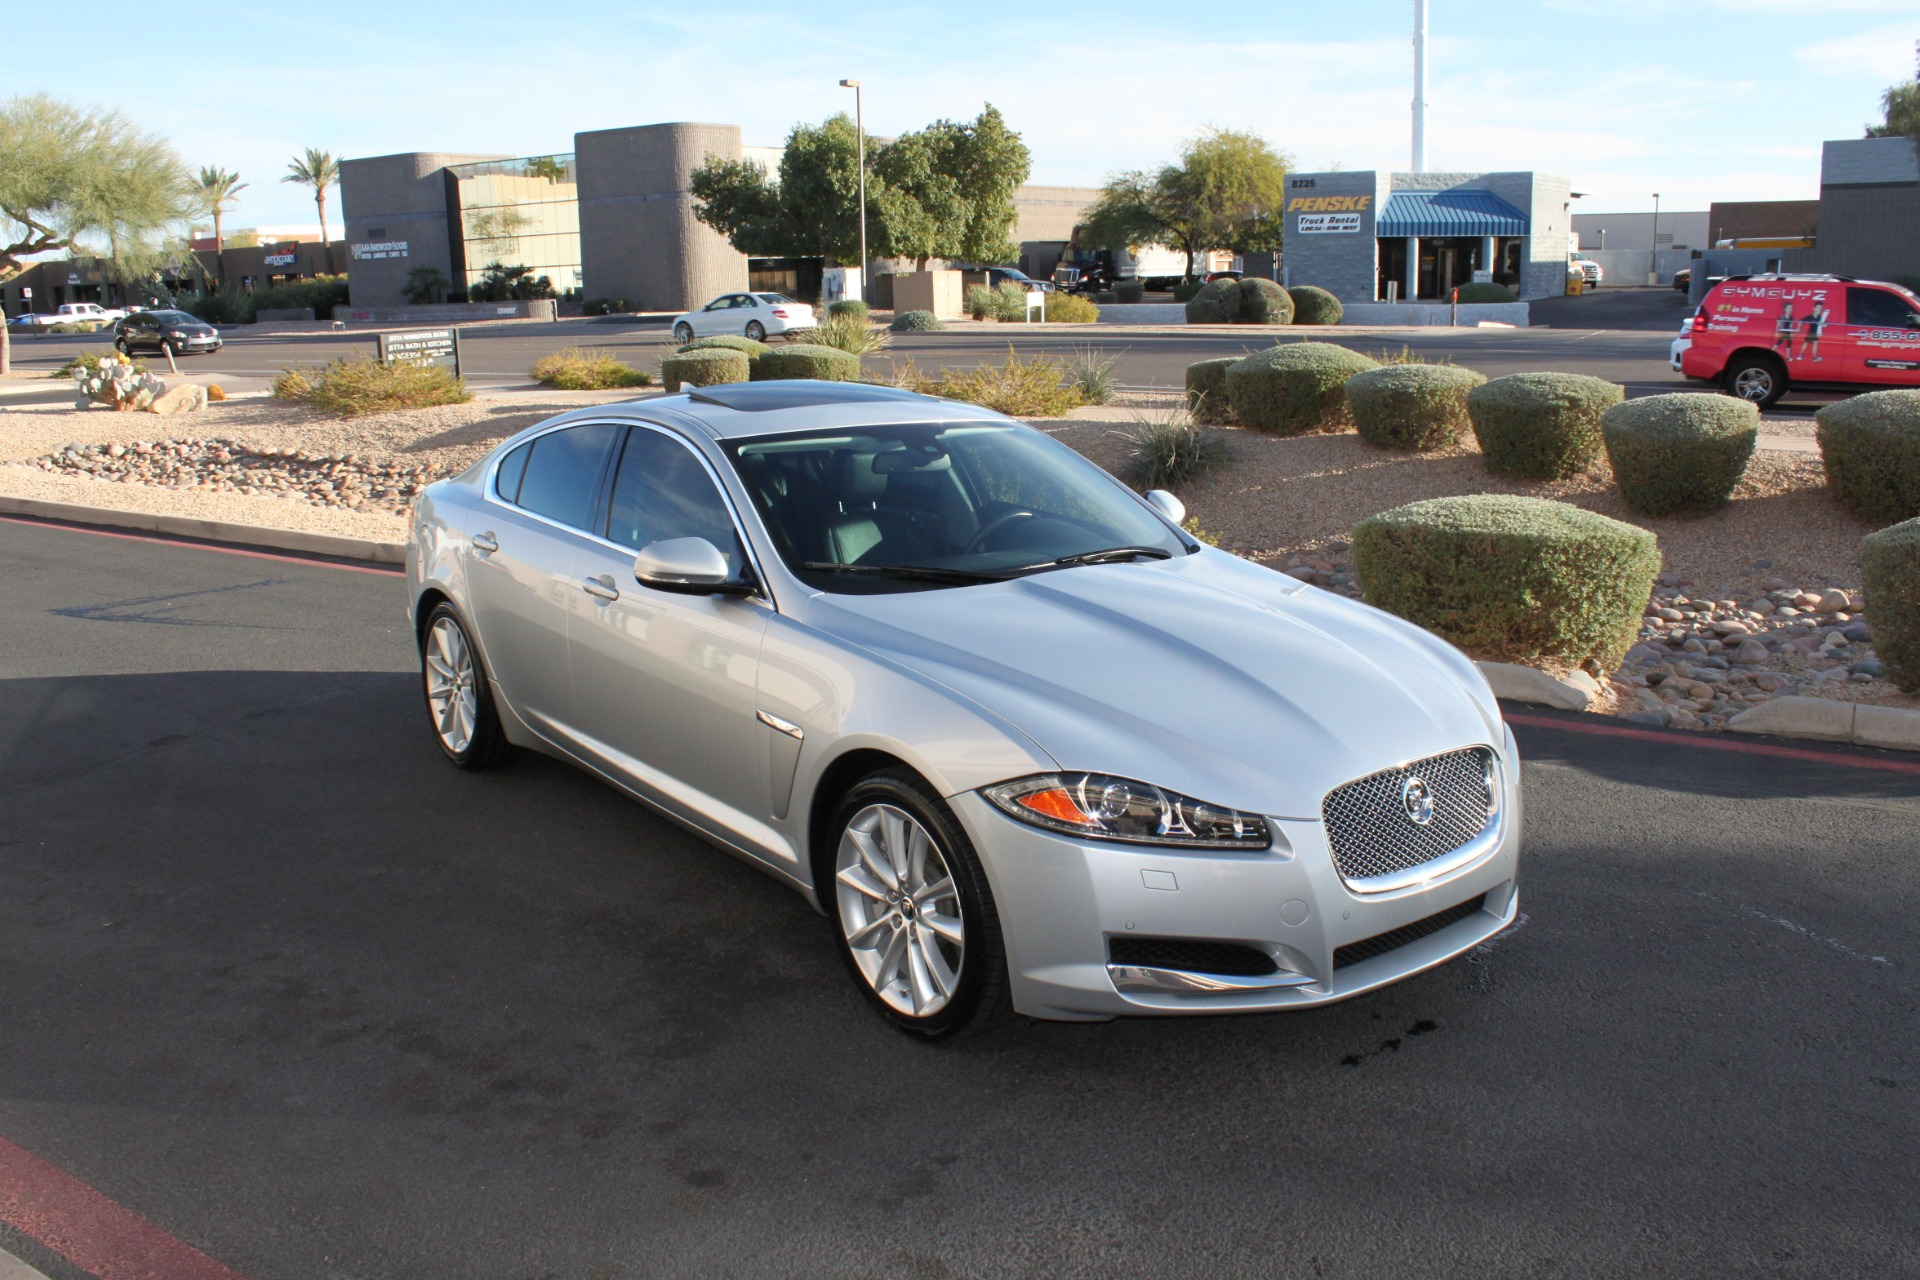 Used-2013-Jaguar-XF-I4-RWD-Chevrolet